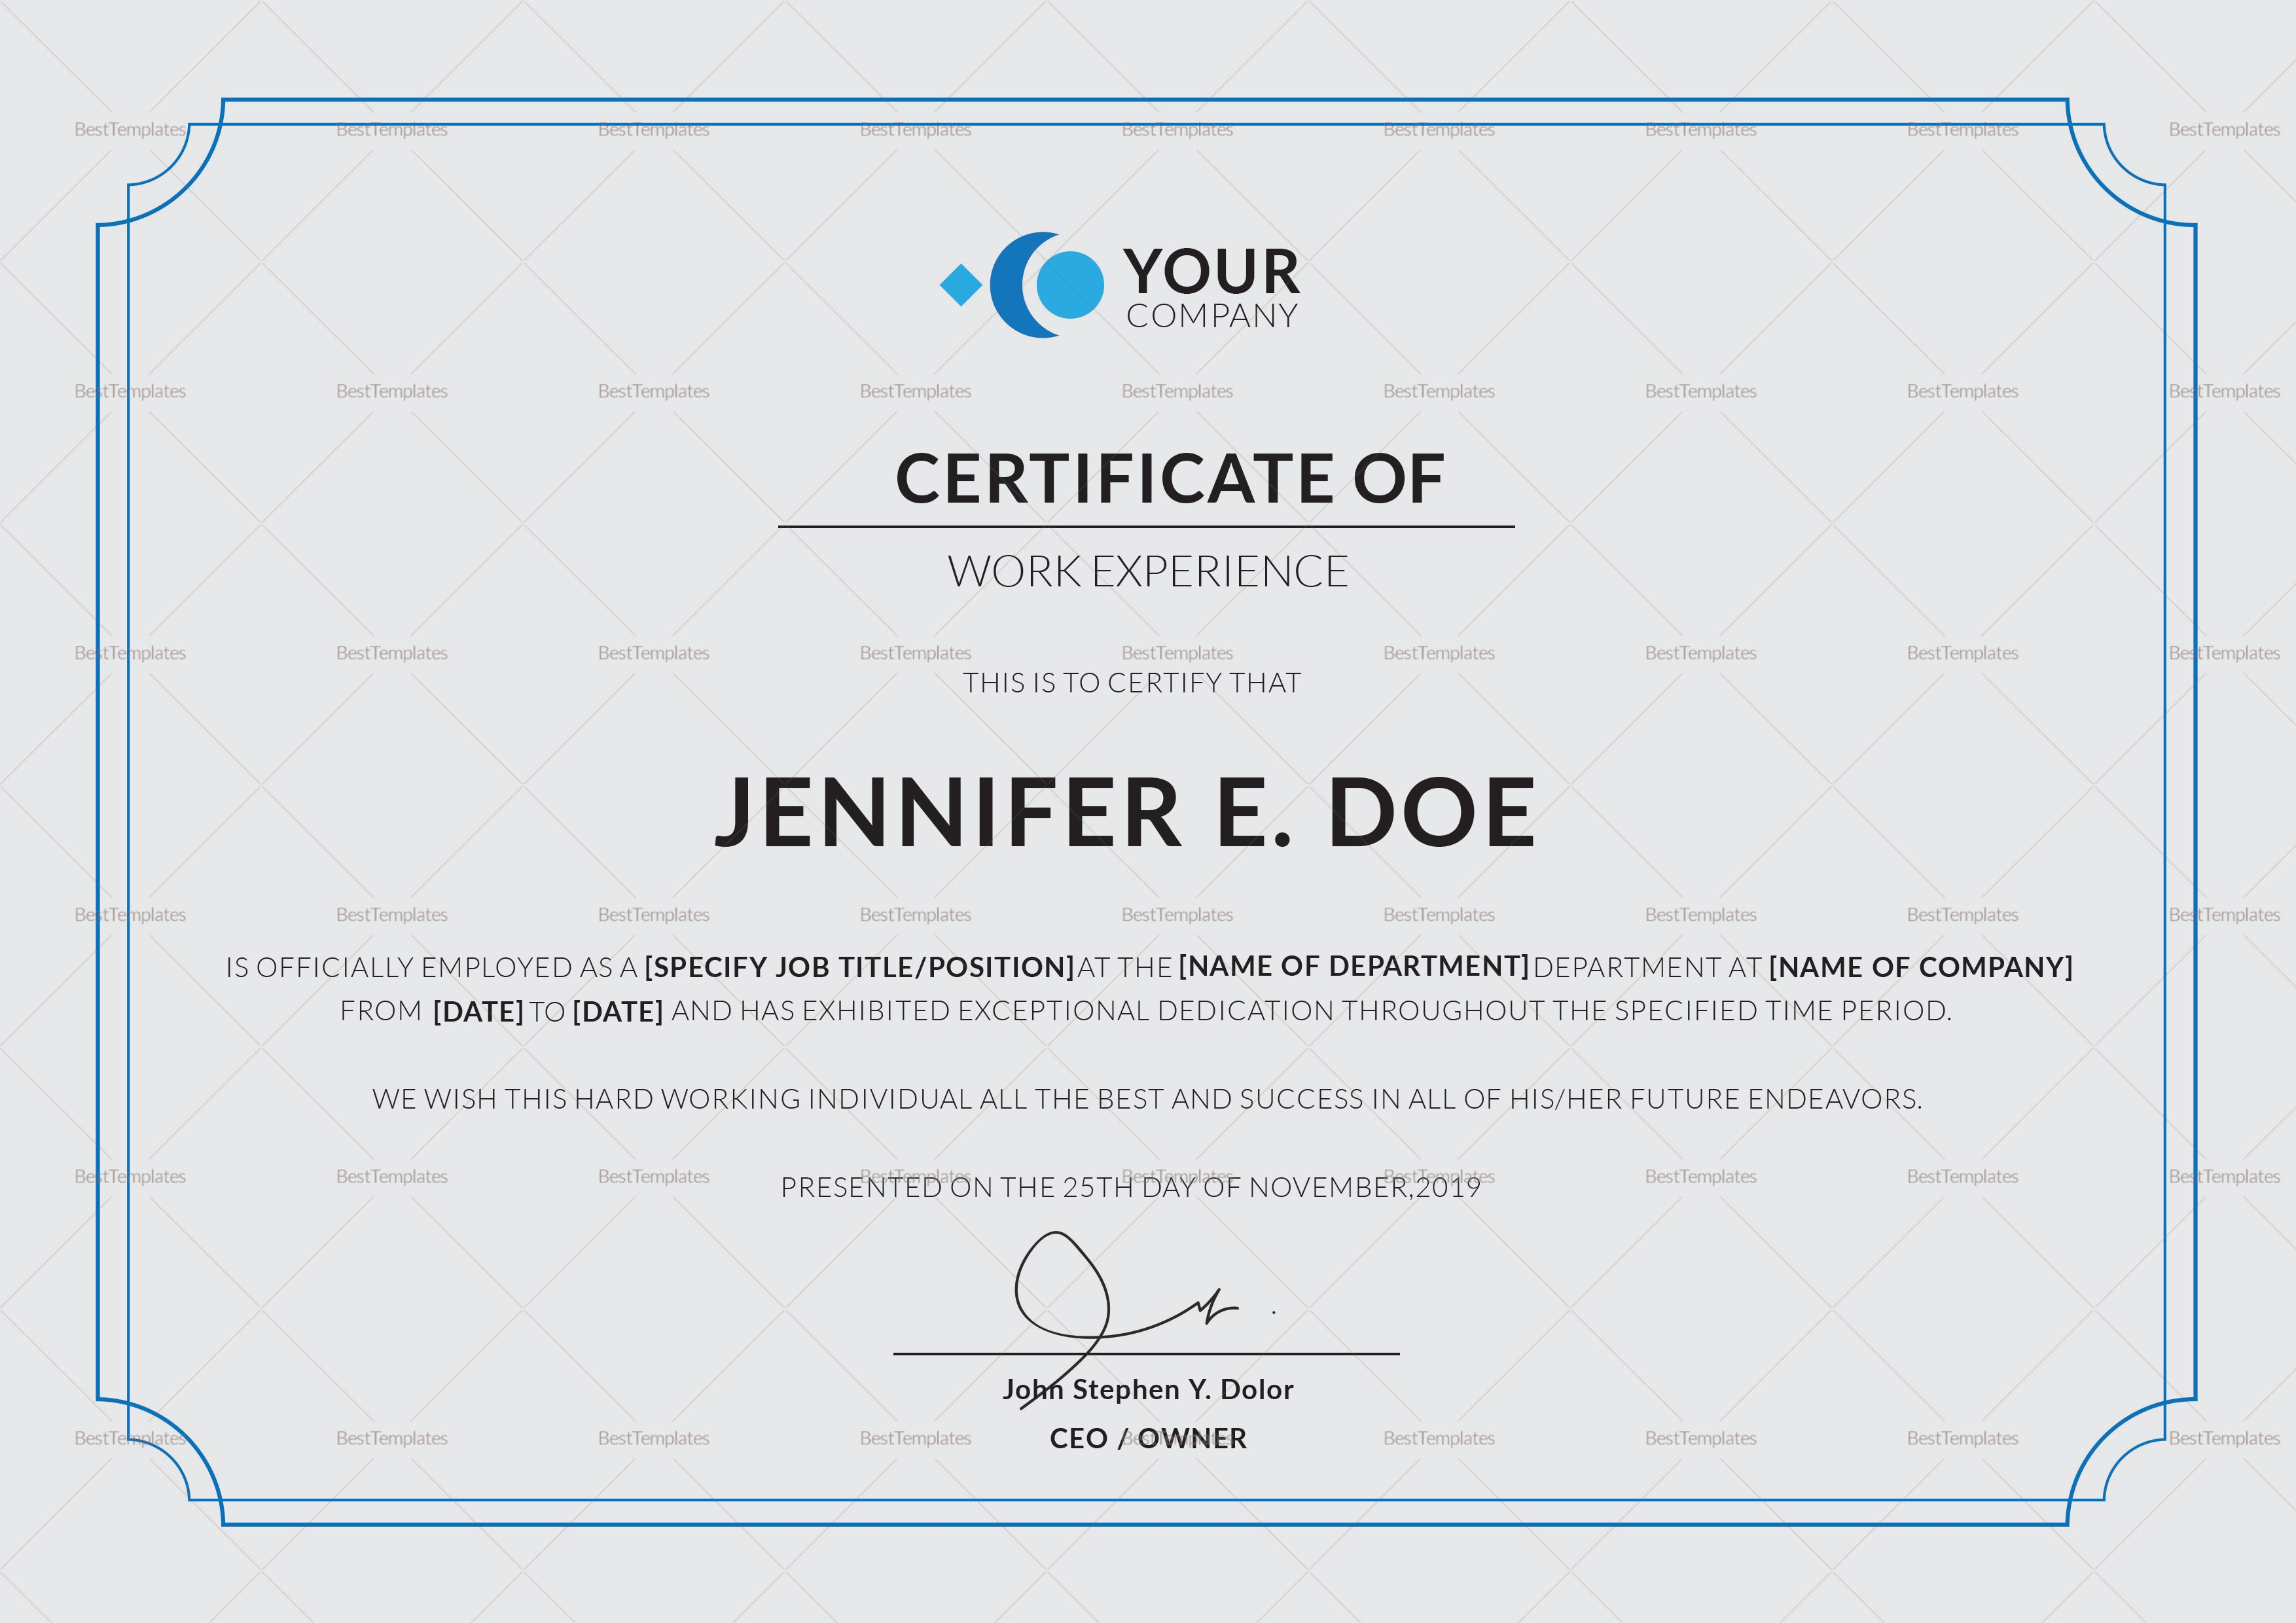 Work Experience Certificate Template In Psd Word Illustrator Within Certificate Of Experience Template